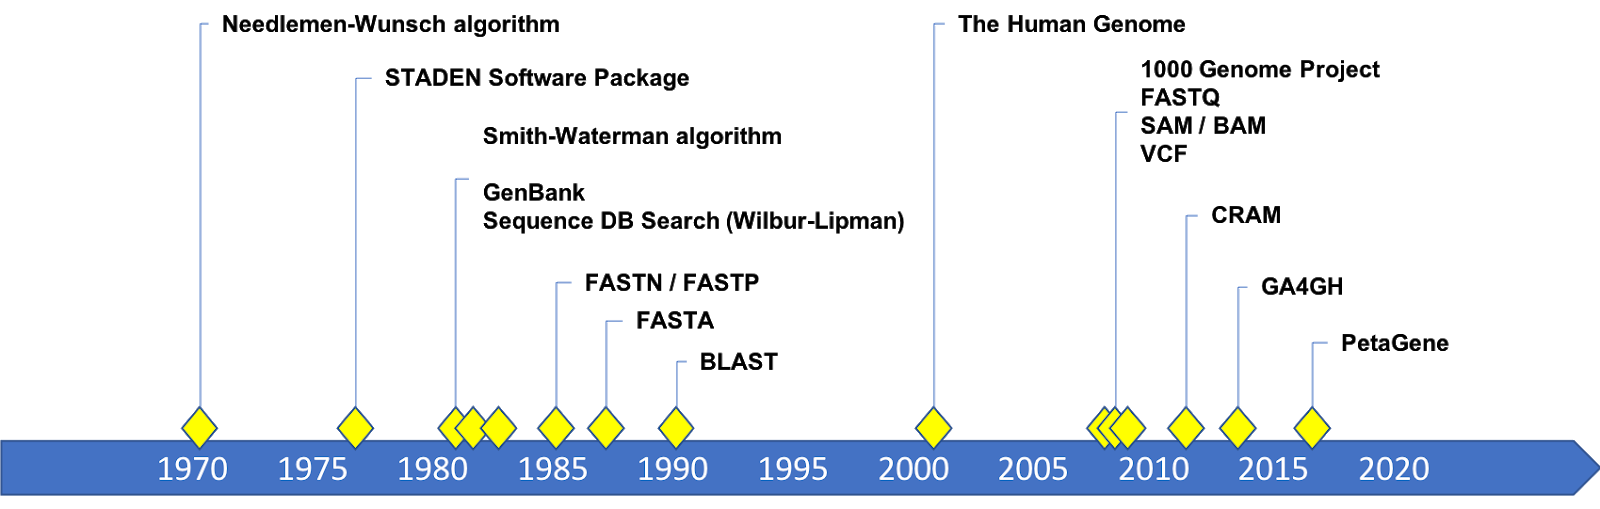 Timeline from 1970 to 2018 showing genomic data formats